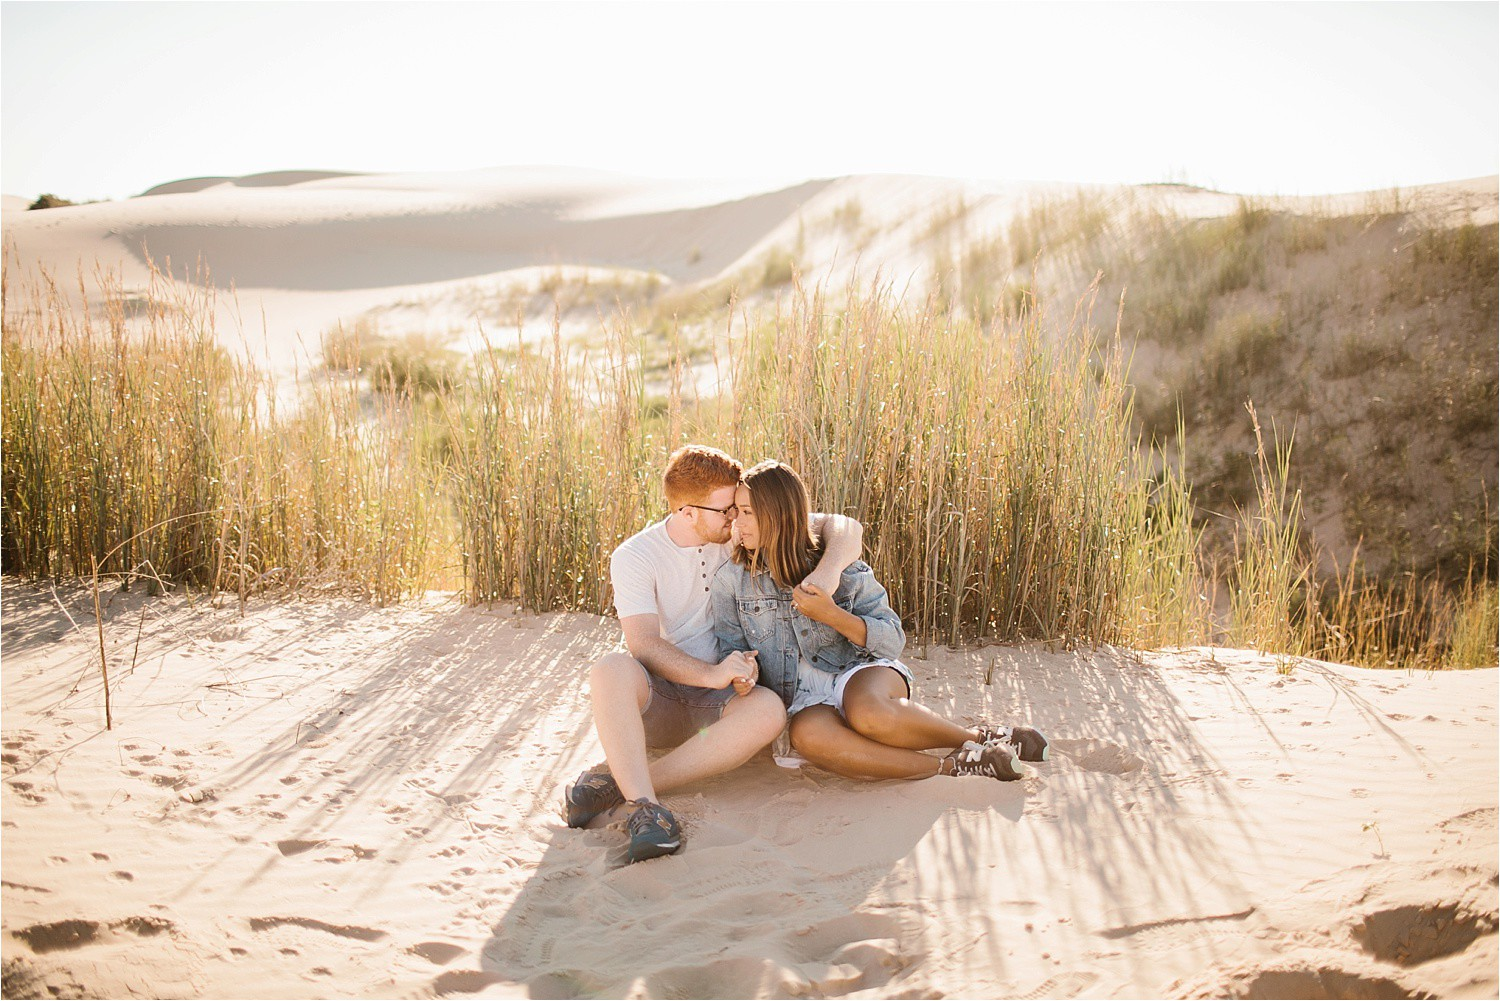 Lauren + Jacob __ a monahans sand dunes engagement session at sunrise by North Texas Wedding Photographer, Rachel Meagan Photography __ 55